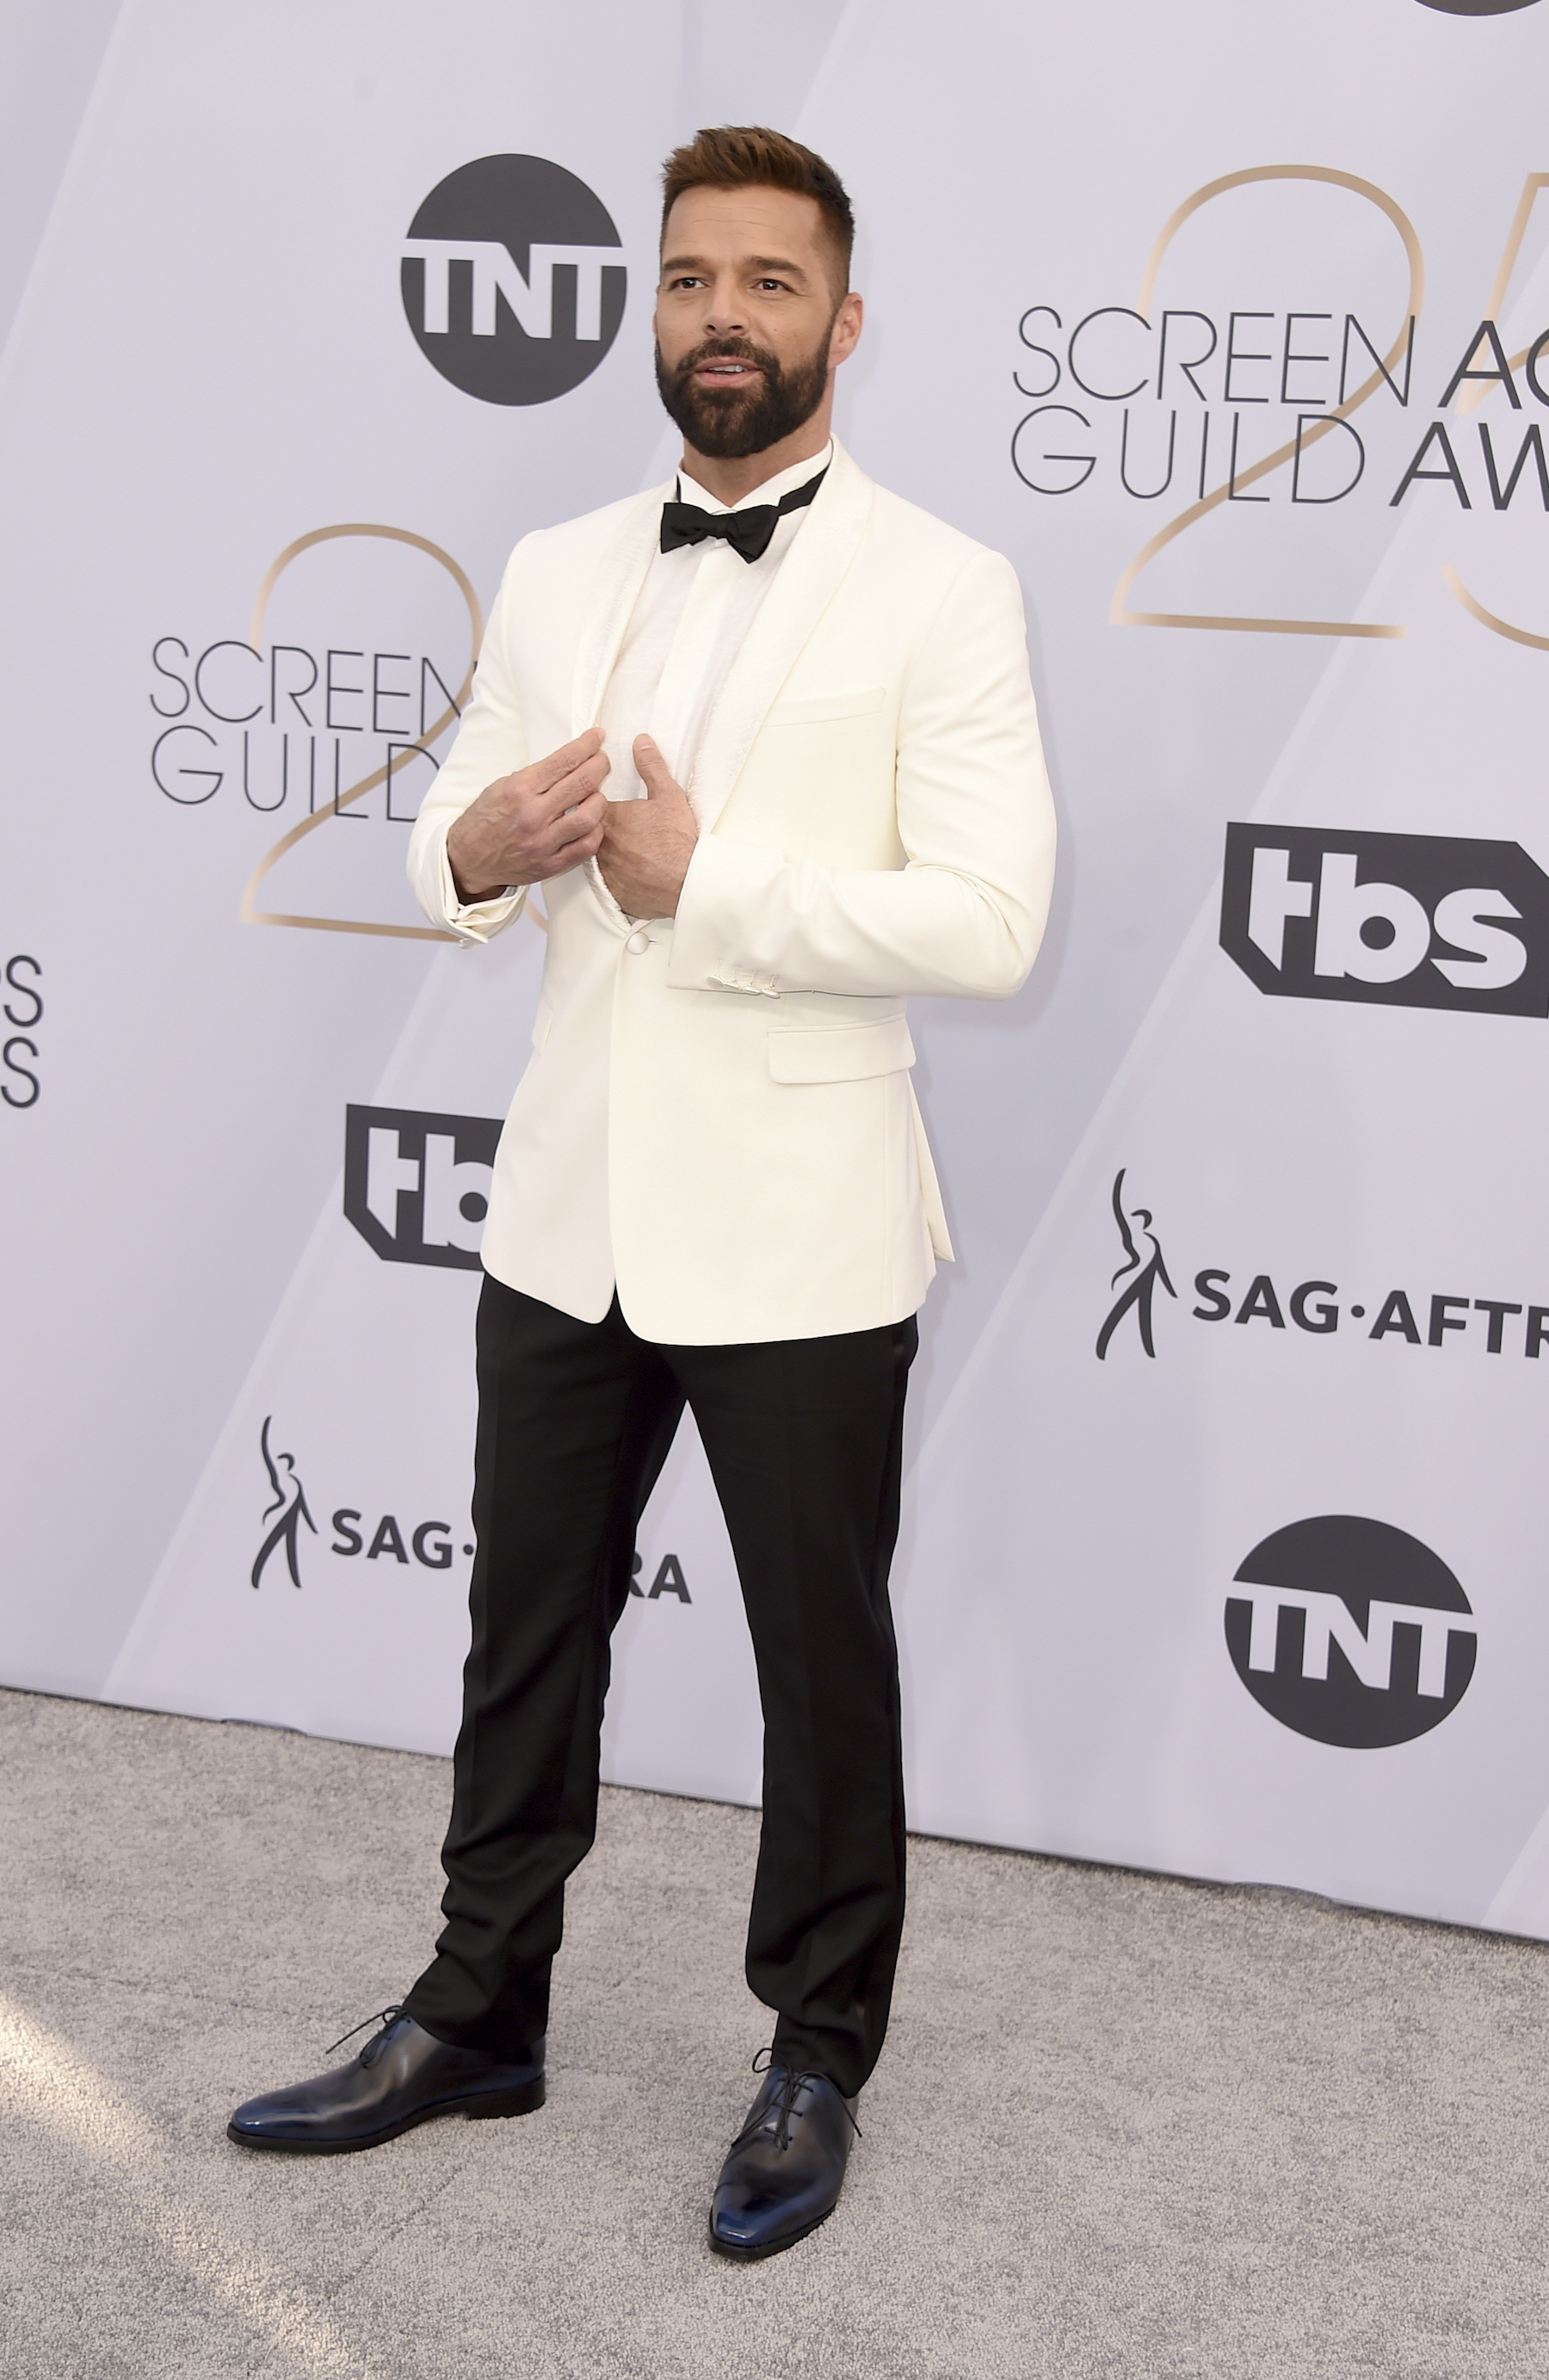 "<div class=""meta image-caption""><div class=""origin-logo origin-image ap""><span>AP</span></div><span class=""caption-text"">Ricky Martin arrives at the 25th annual Screen Actors Guild Awards at the Shrine Auditorium & Expo Hall on Sunday, Jan. 27, 2019, in Los Angeles. (Jordan Strauss/Invision/AP)</span></div>"